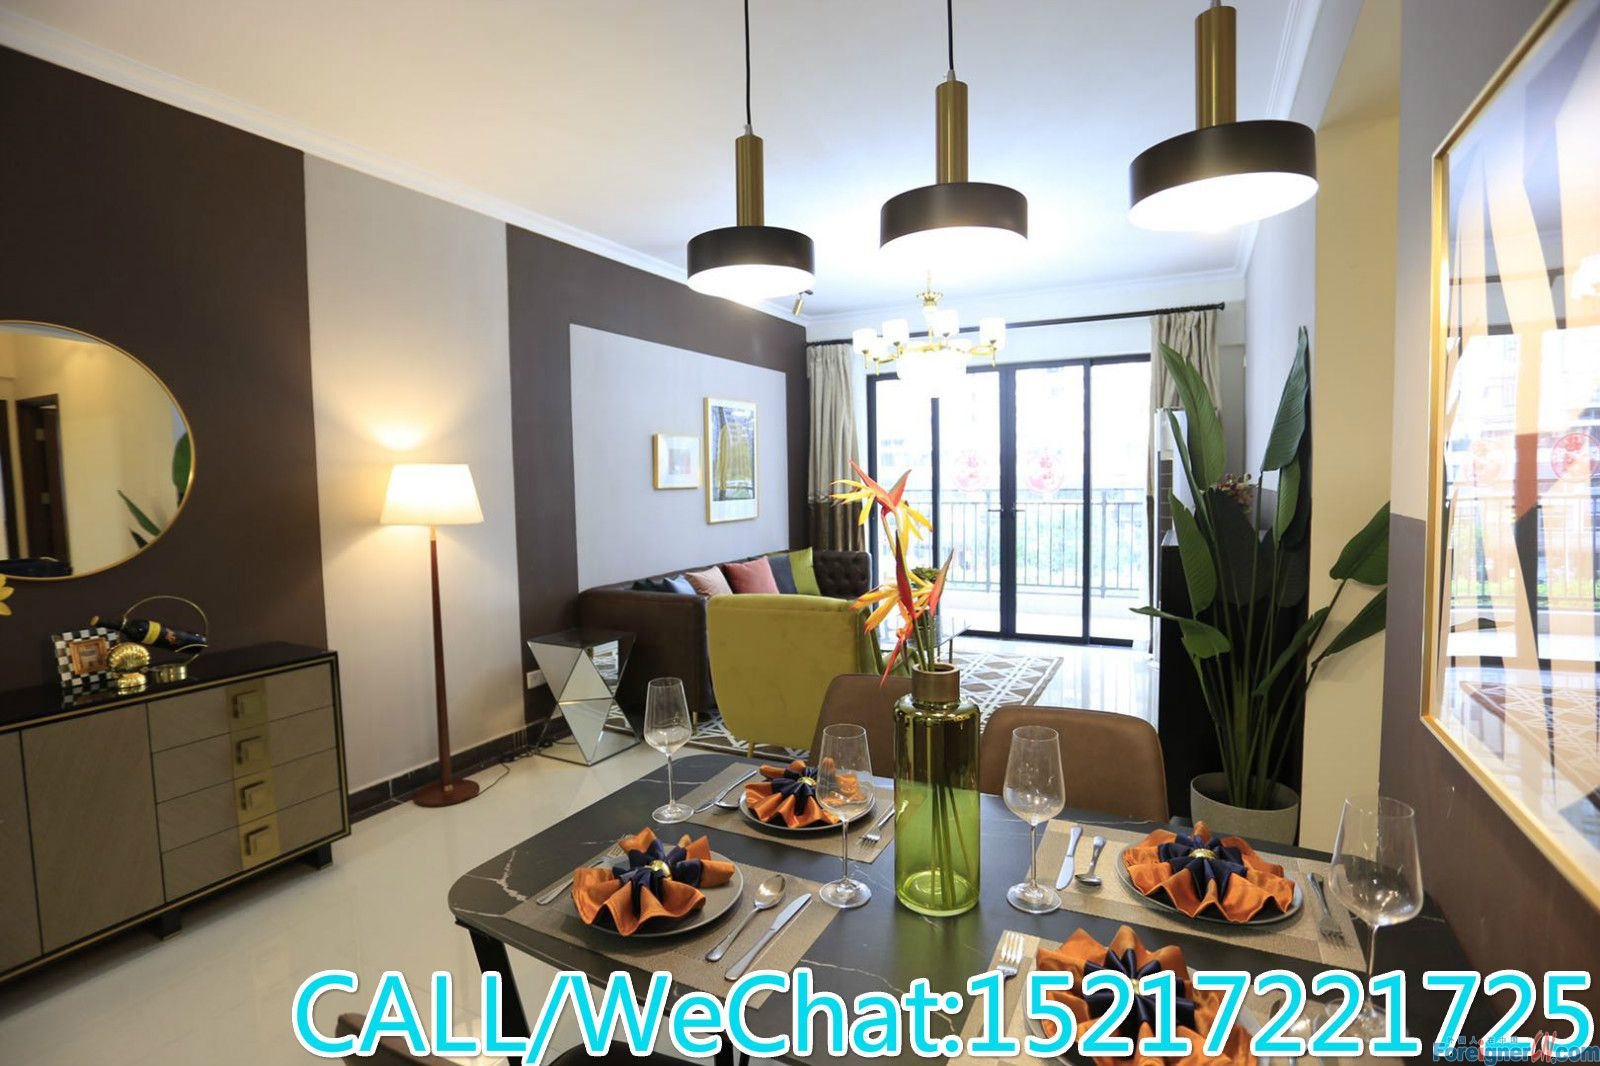 MORDEN STYLE/CLEAN AND BRIGHT/HIGH FLOOR/GOOD CONDITION/CBD AREA.